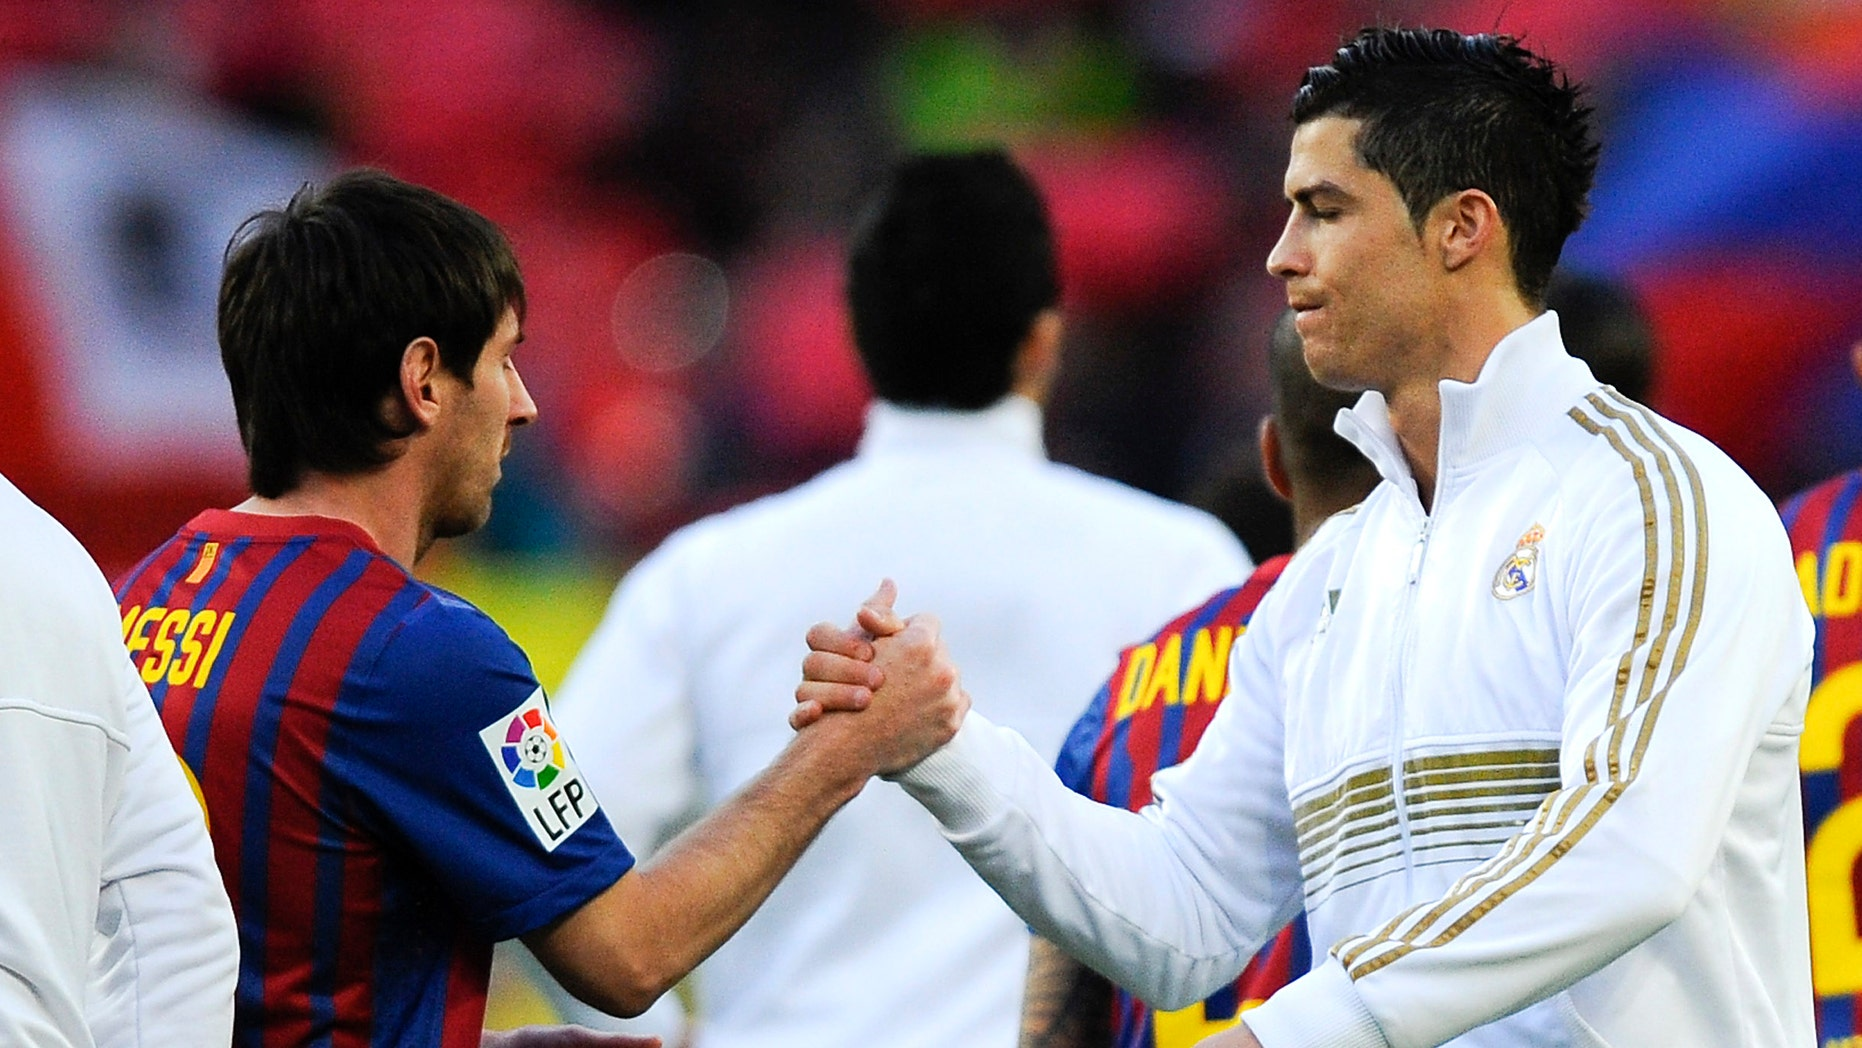 Lionel Messi of FC Barcelona (L) and Cristiano Ronaldo of Real Madrid CF shake hands prior to the La Liga match between FC Barcelona and Real Madrid at Camp Nou on April 21, 2012 in Barcelona, Spain. (Photo by David Ramos/Getty Images)